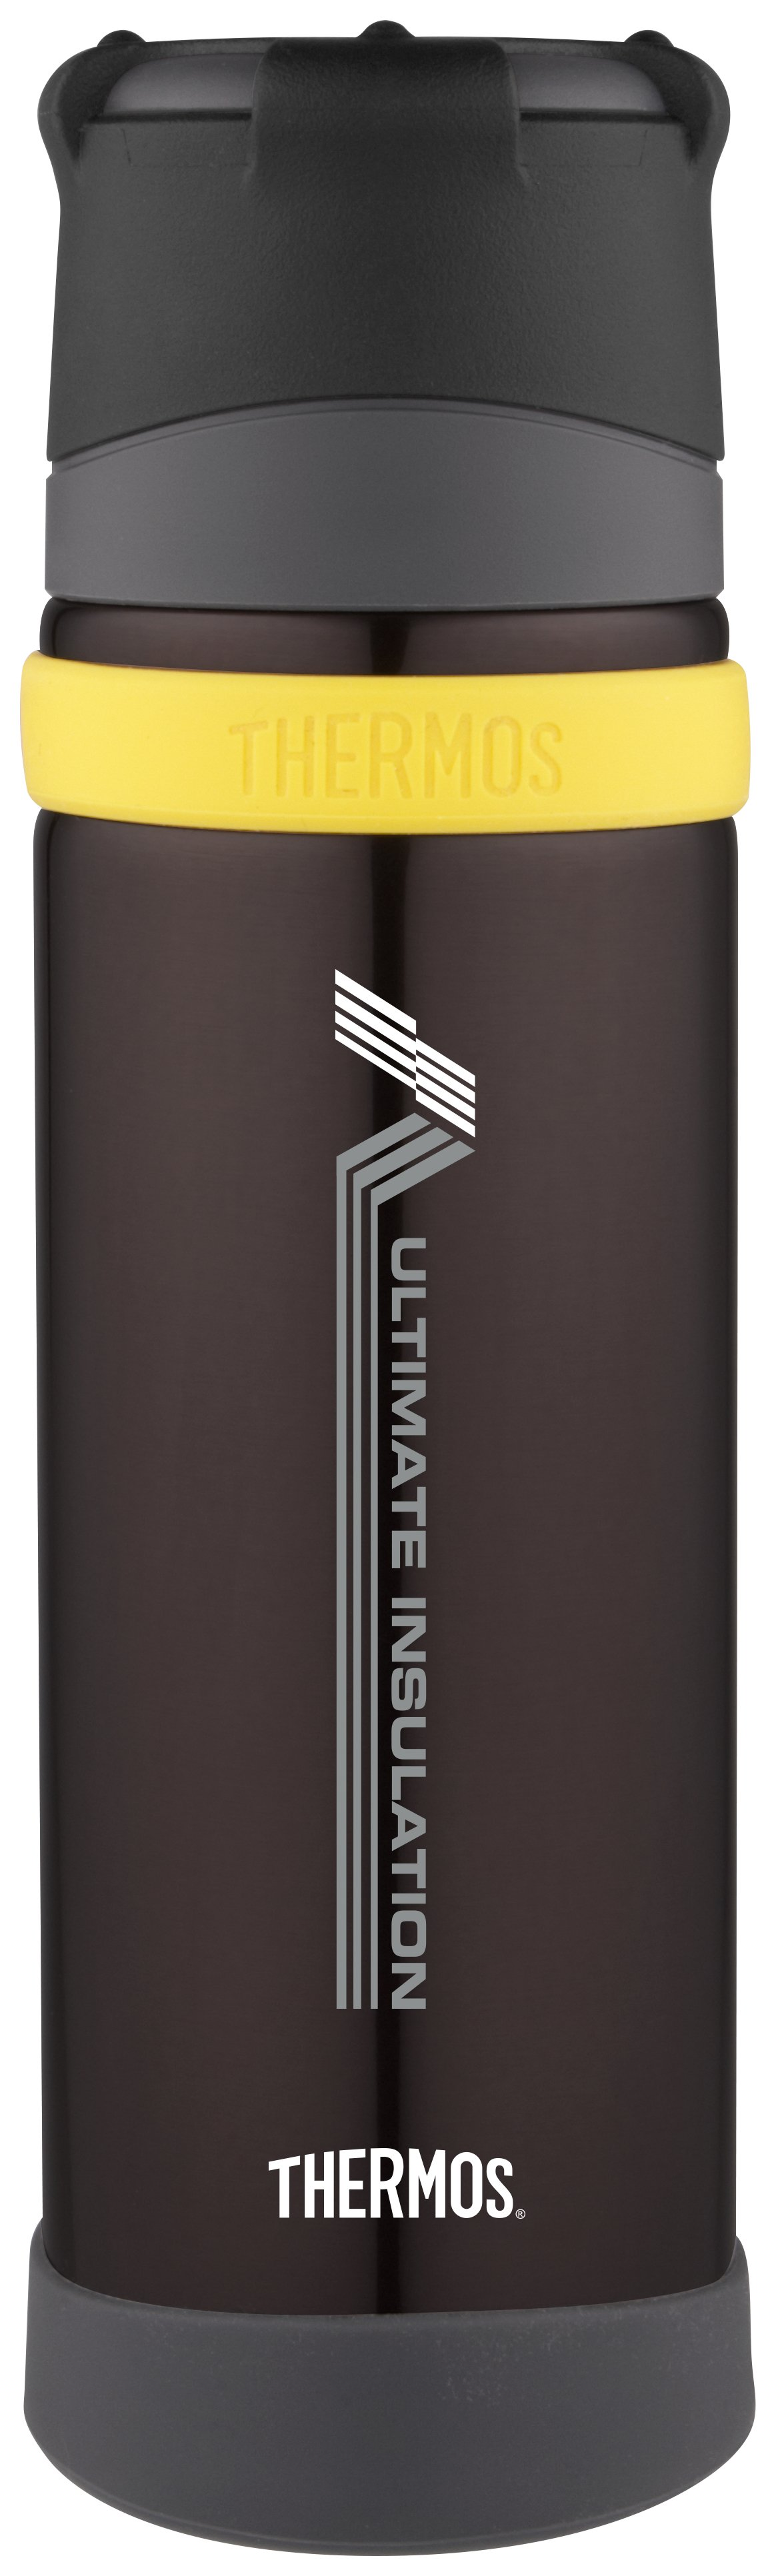 Image of Thermos Ultimate Flask - 500ml.